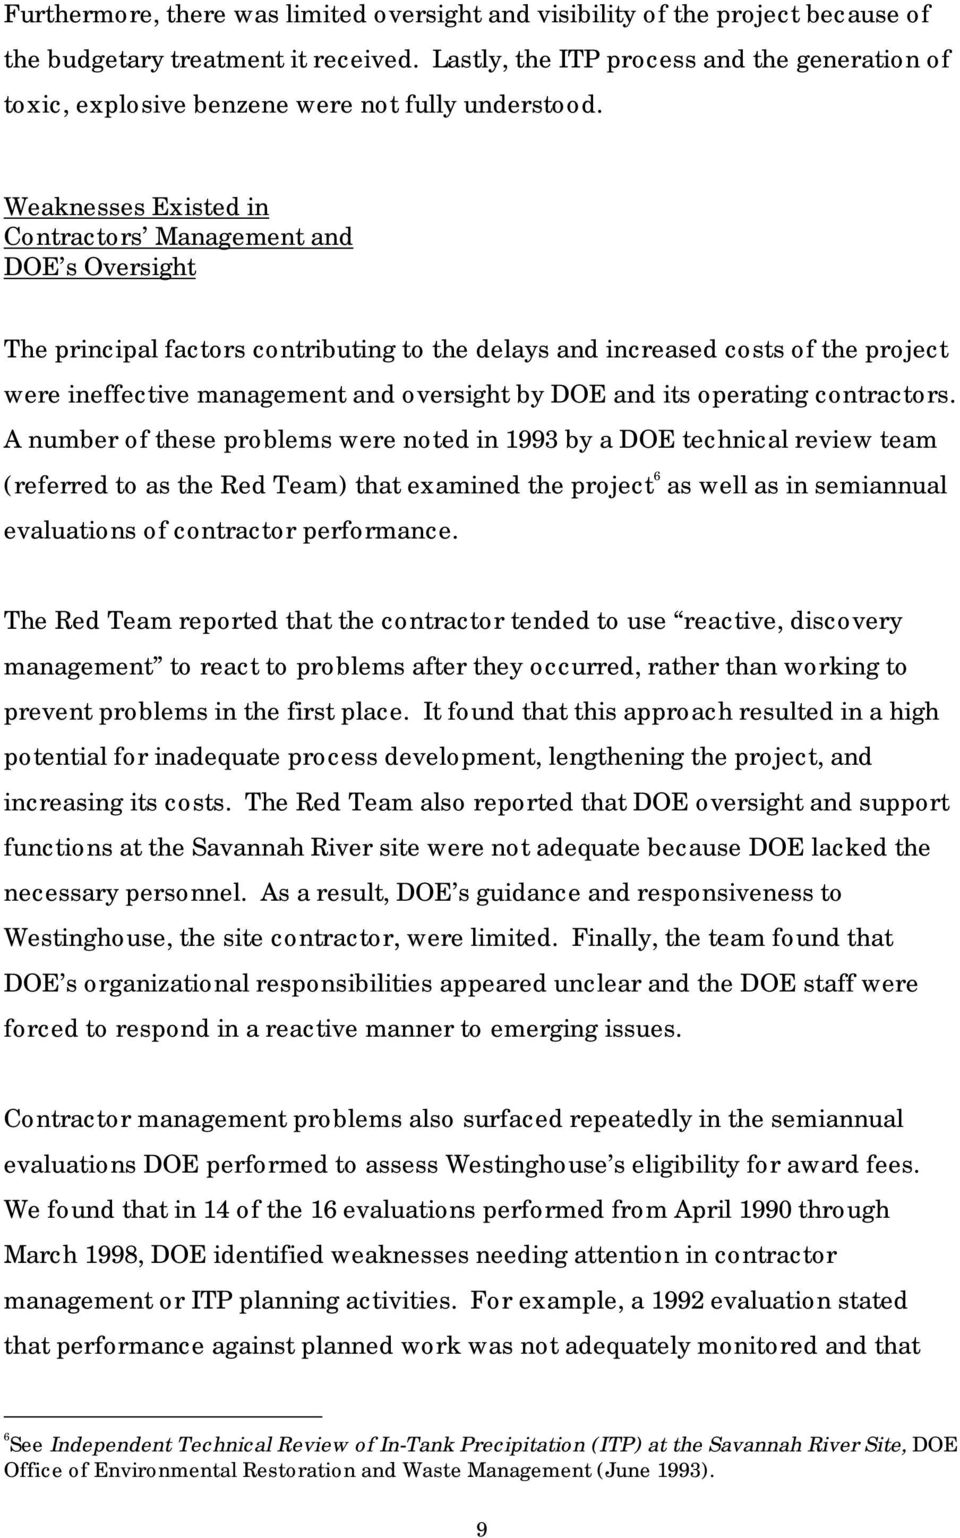 Weaknesses Existed in Contractors Management and DOE s Oversight The principal factors contributing to the delays and increased costs of the project were ineffective management and oversight by DOE